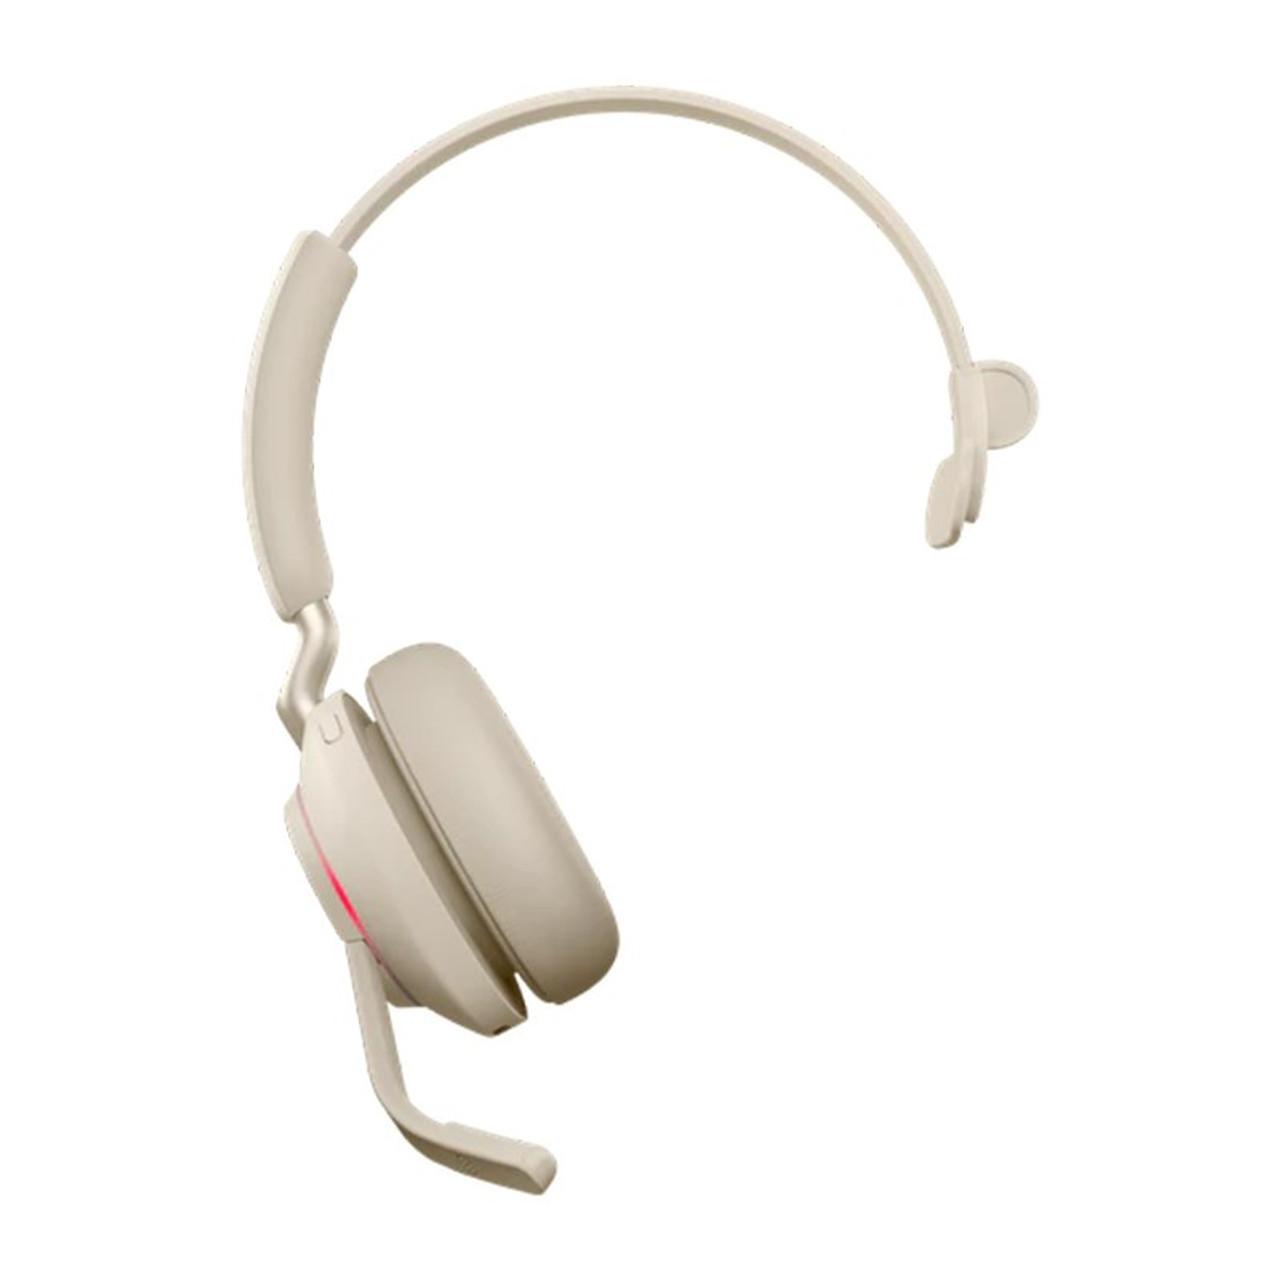 Image for Jabra Evolve2 65 MS USB-A Mono Bluetooth Headset - Beige CX Computer Superstore